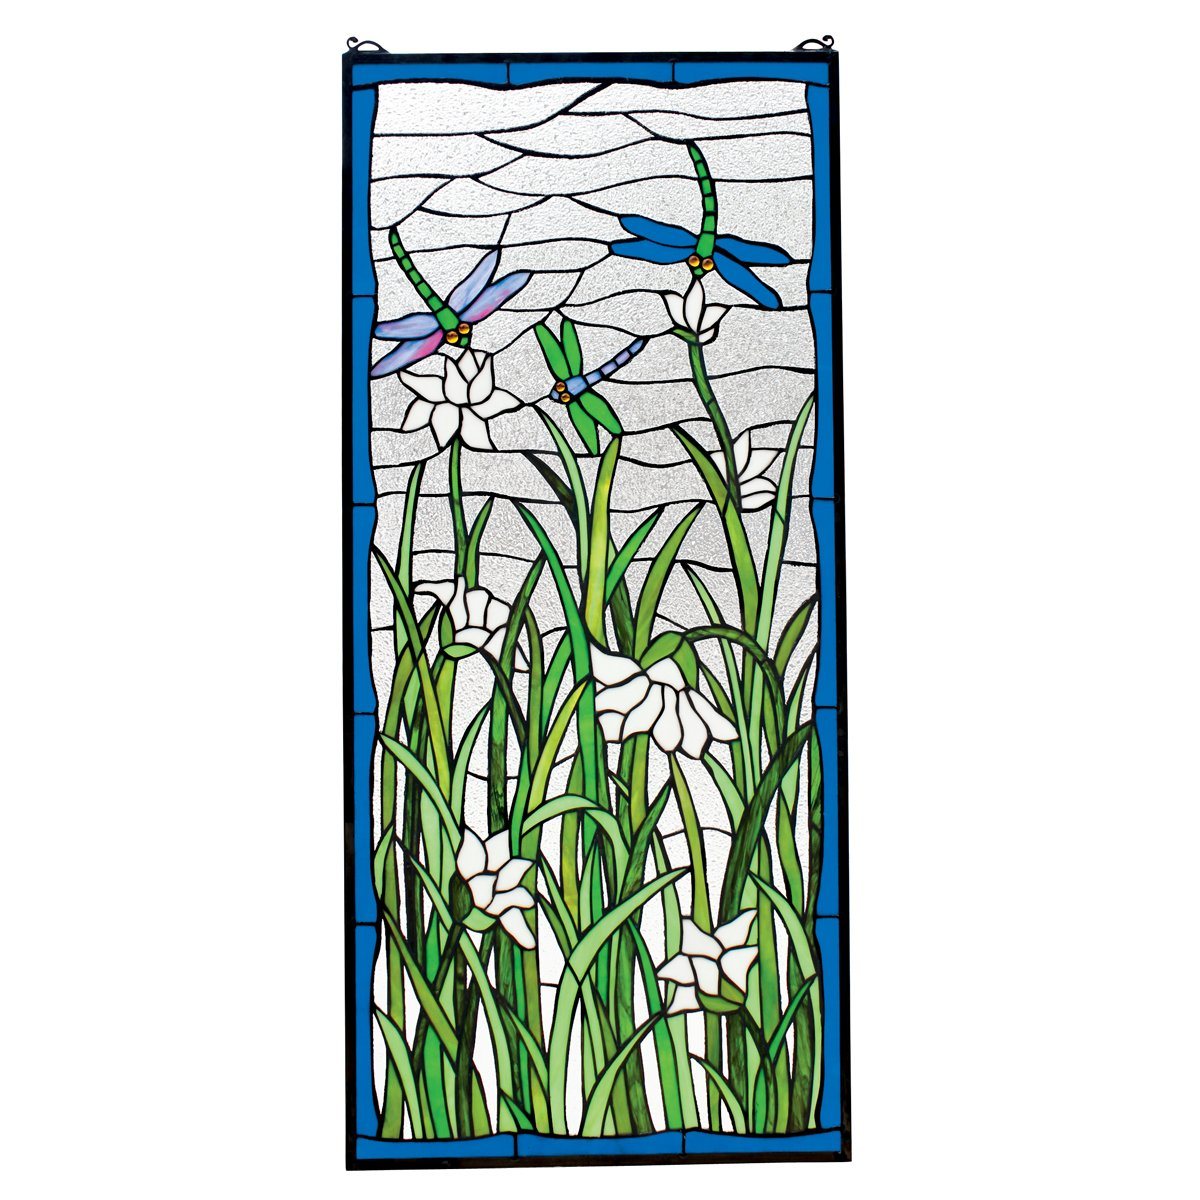 Stained Glass Panel - Dragonflies Dance Dragonfly Stained Glass Window Hangings - Window Treatments